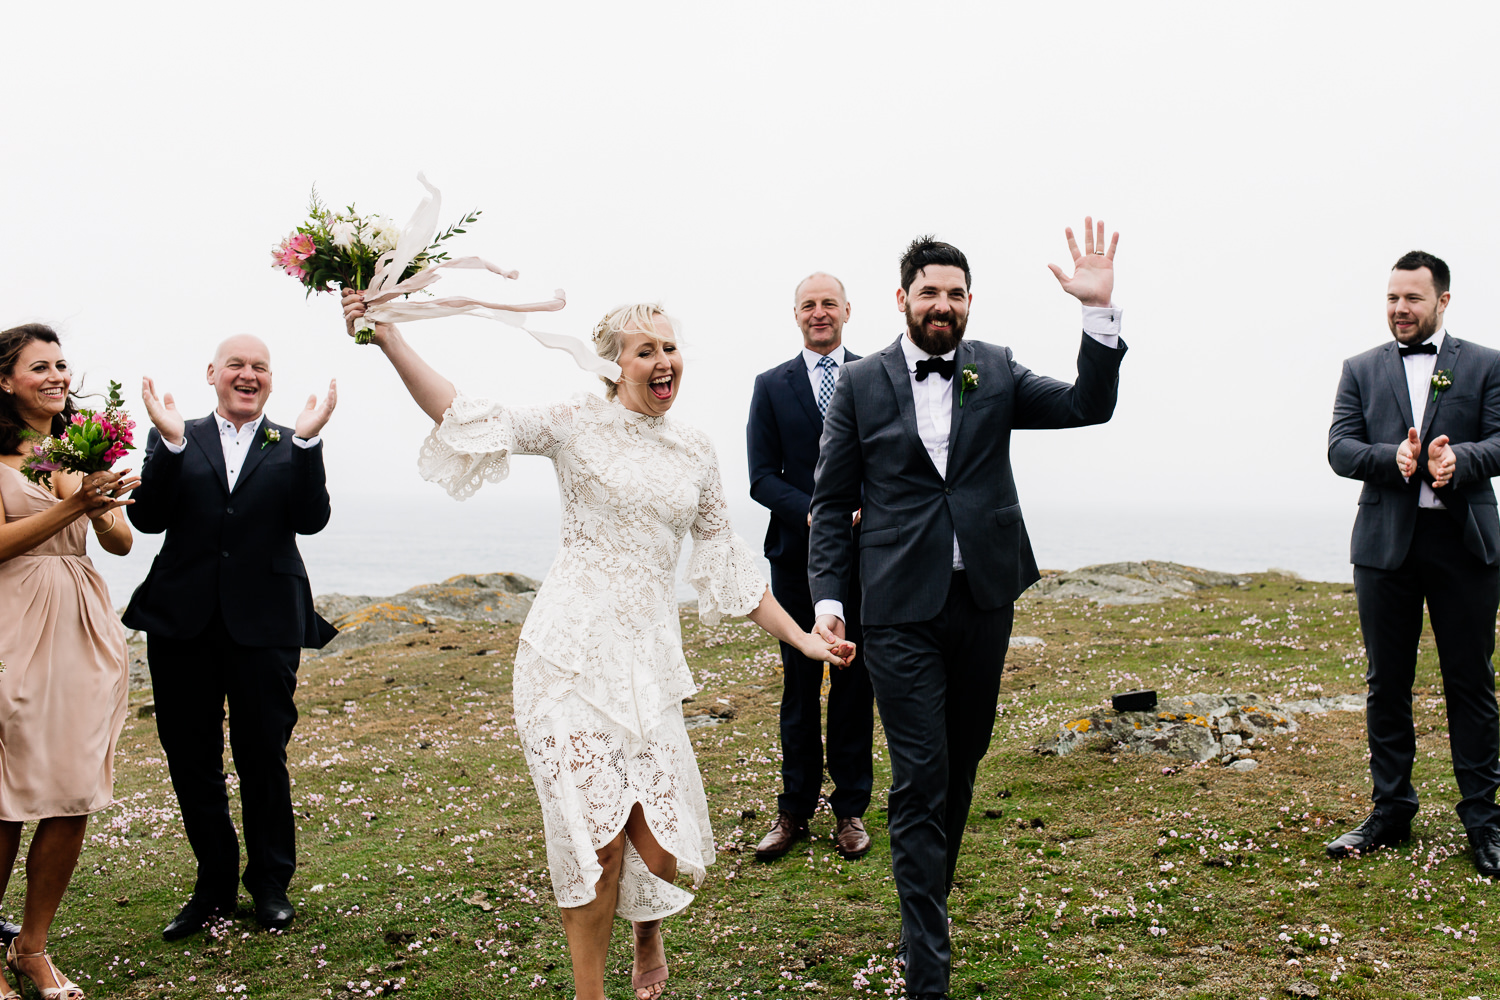 A bride and groom celebrate their wedding at an outdoor ceremony on the headland of Anglesey, Wales wedding photographers.